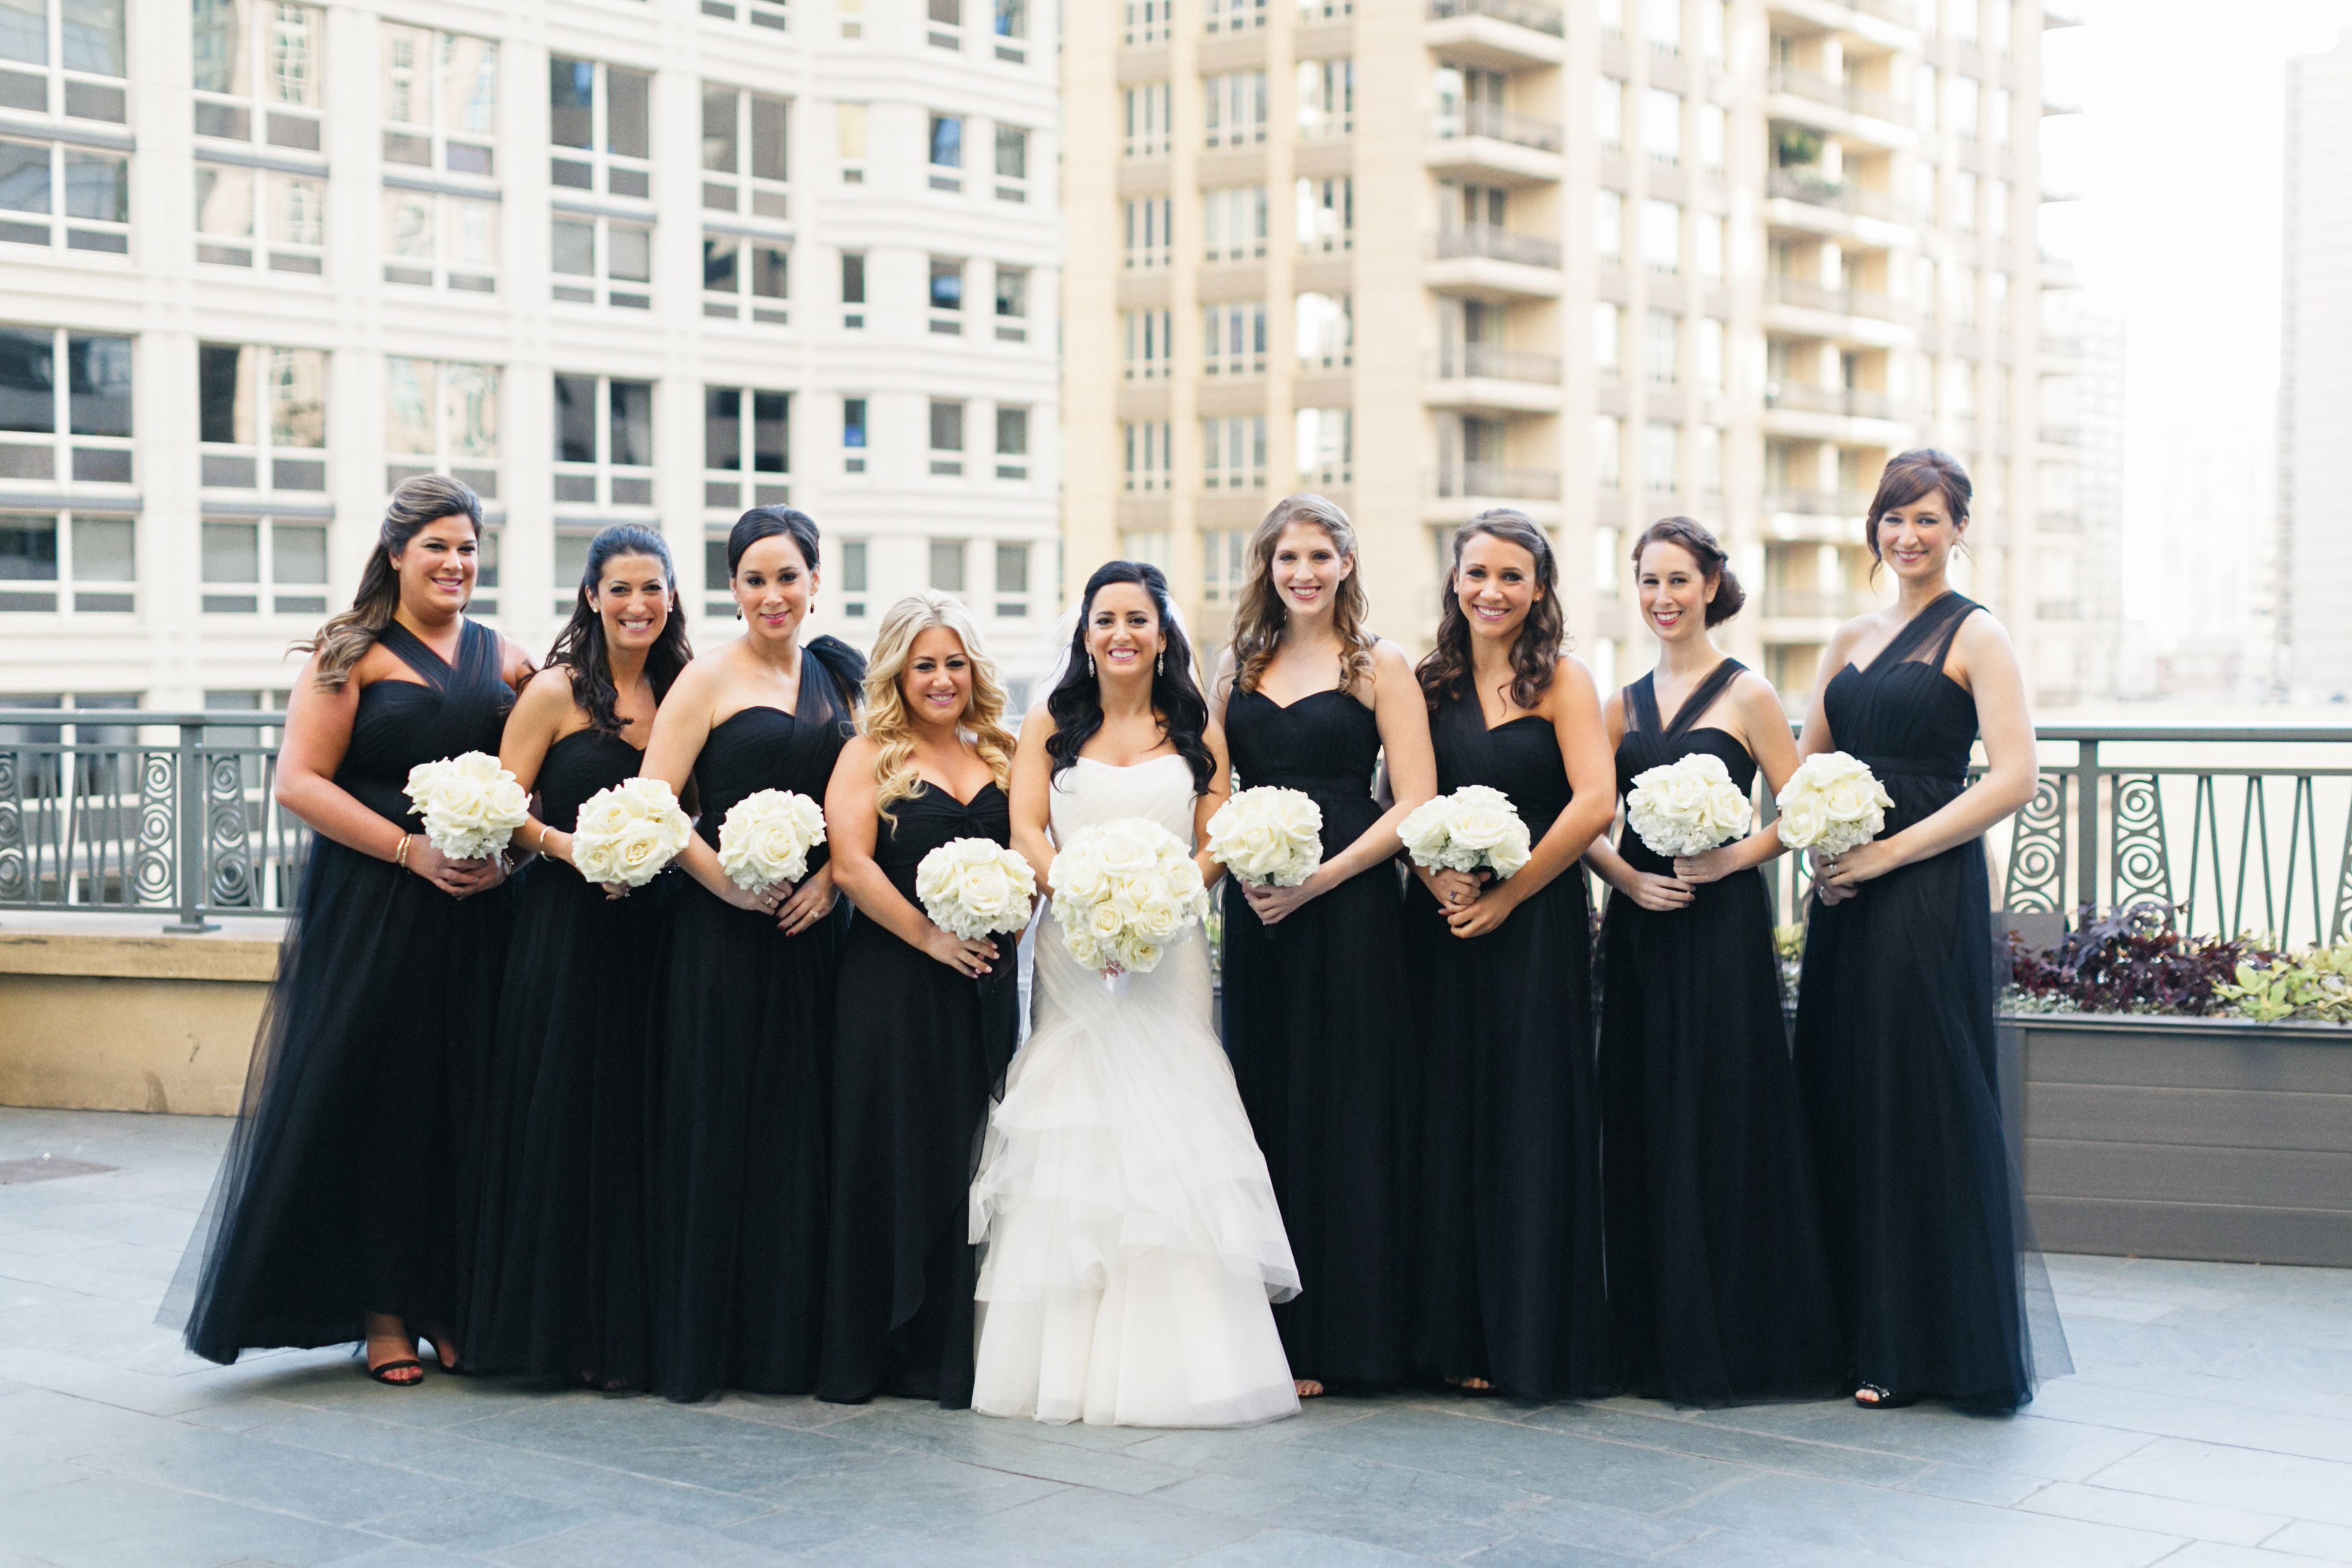 Black convertible bridesmaid annabelle jenny yoo bridesmaid jenny yoo collection bridal and bridesmaids dresses for the simple bride ombrellifo Images